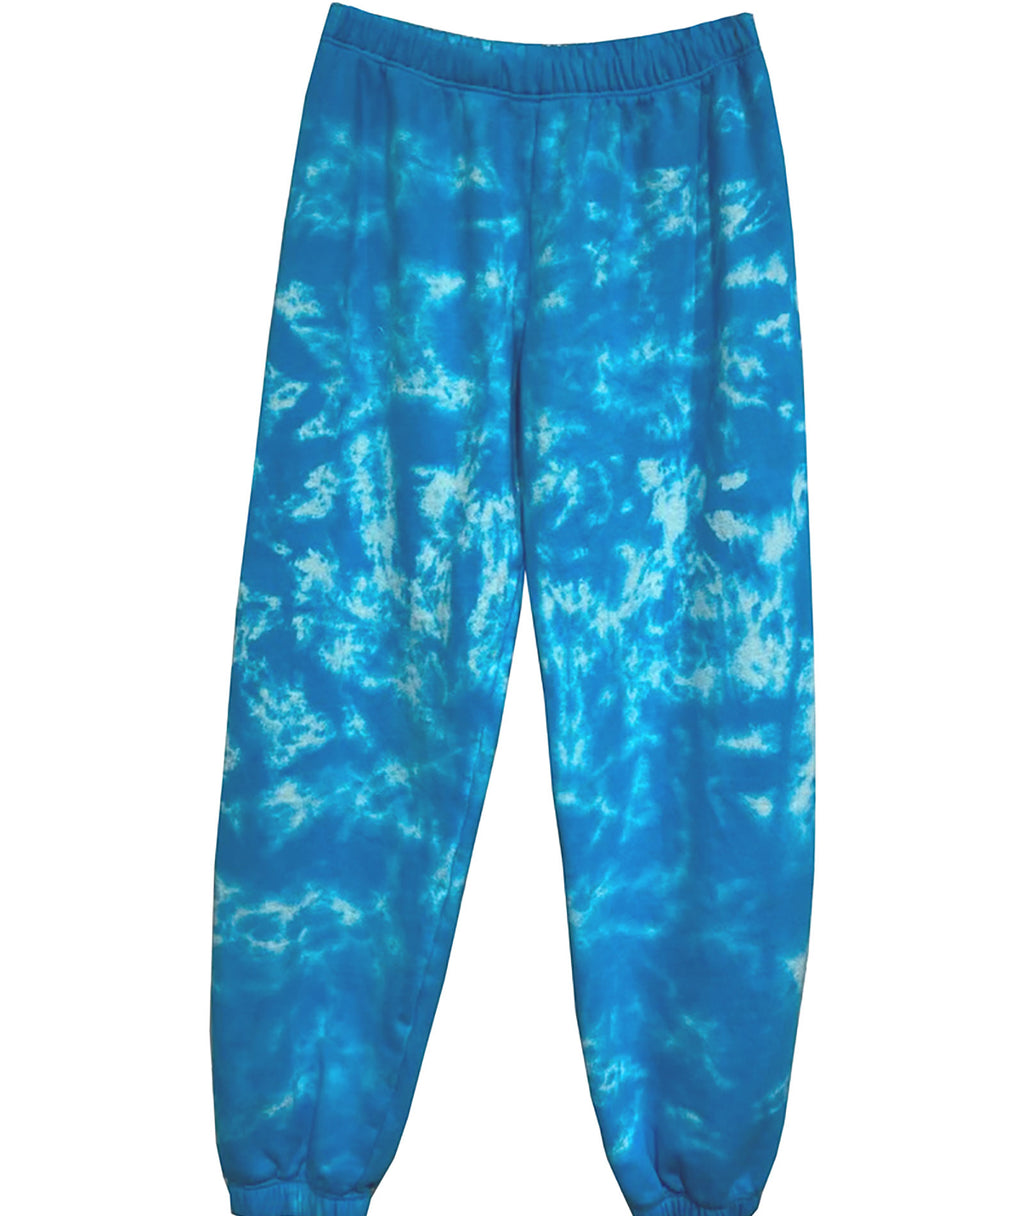 Me.n.u Girls Tie-Dye Blue Sweatpants